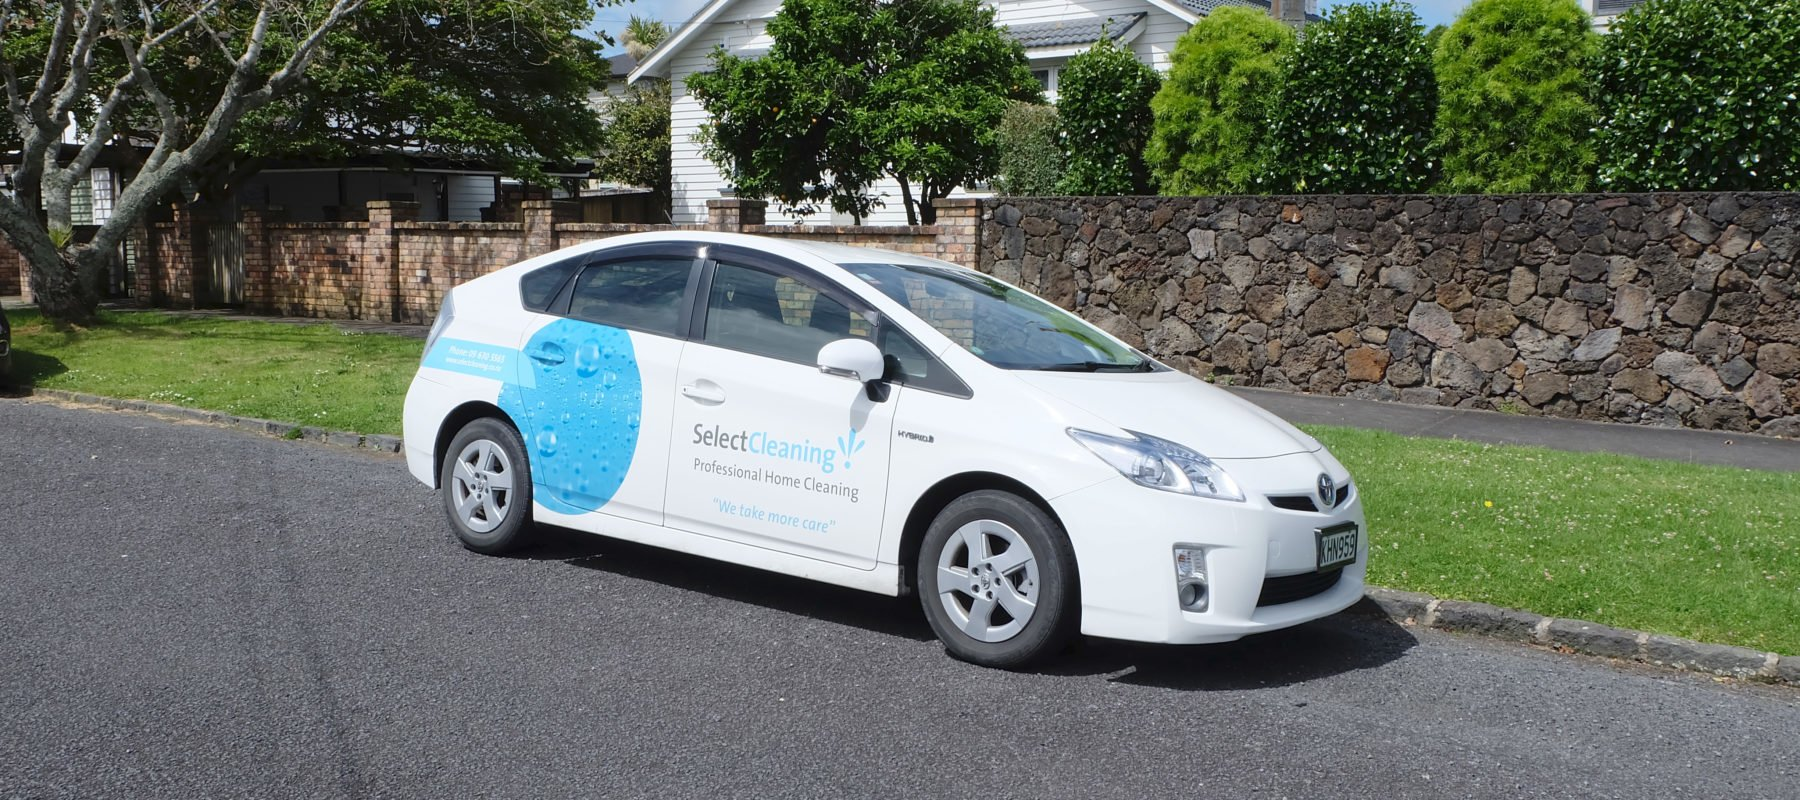 Vehicler graphics on car of Select Cleaning business owner in Auckland